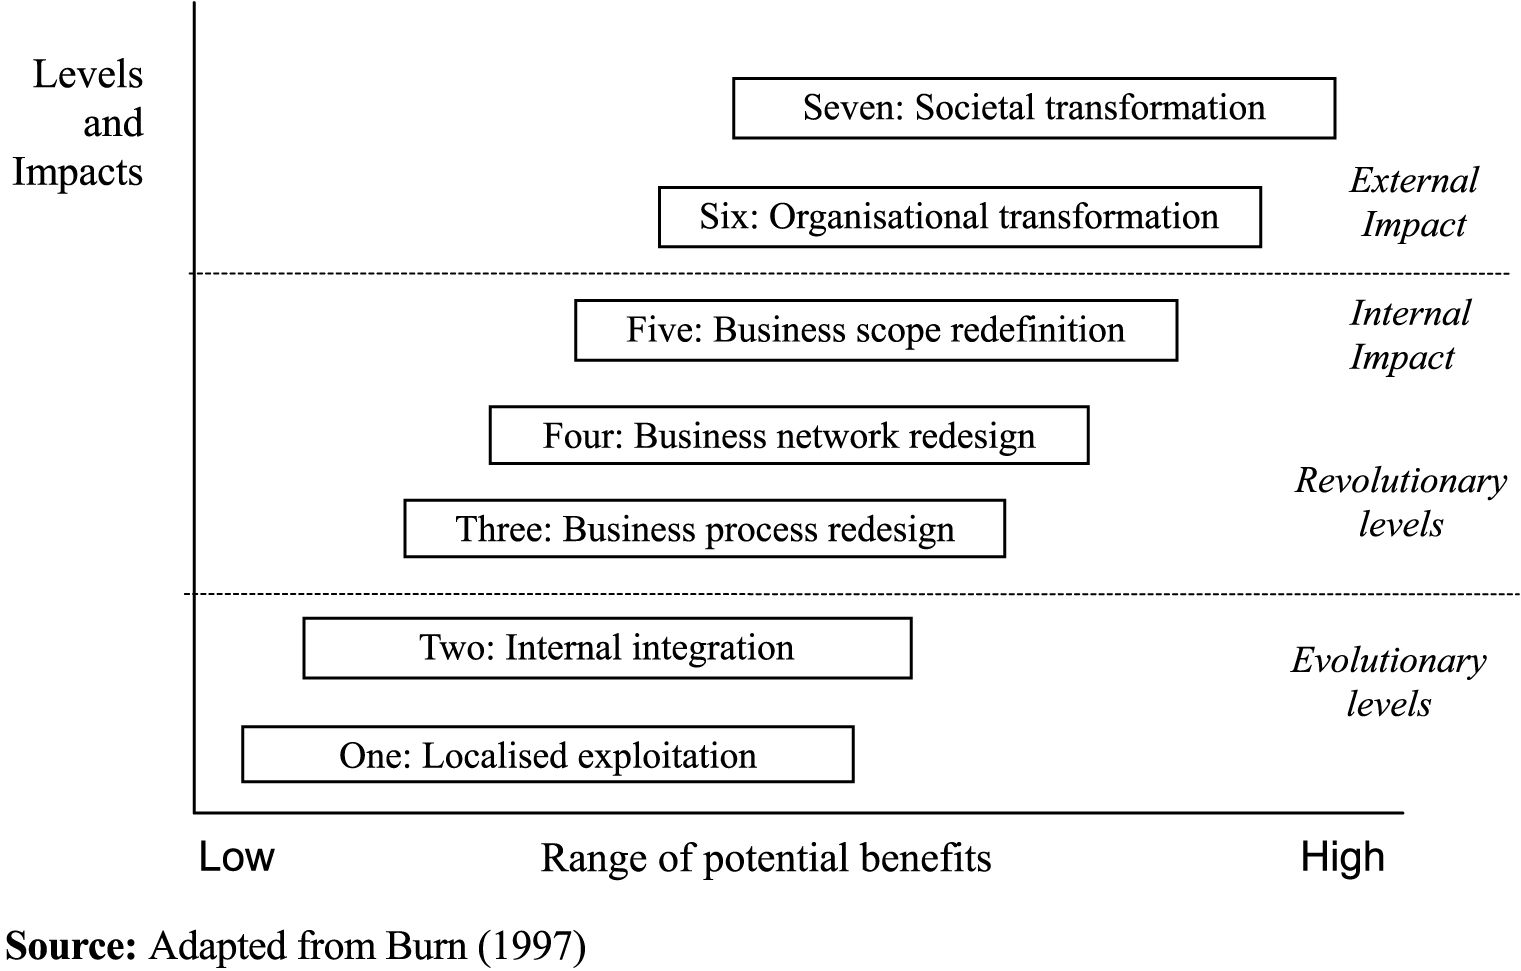 Pin by Glenn on Business analyst (With images) Business